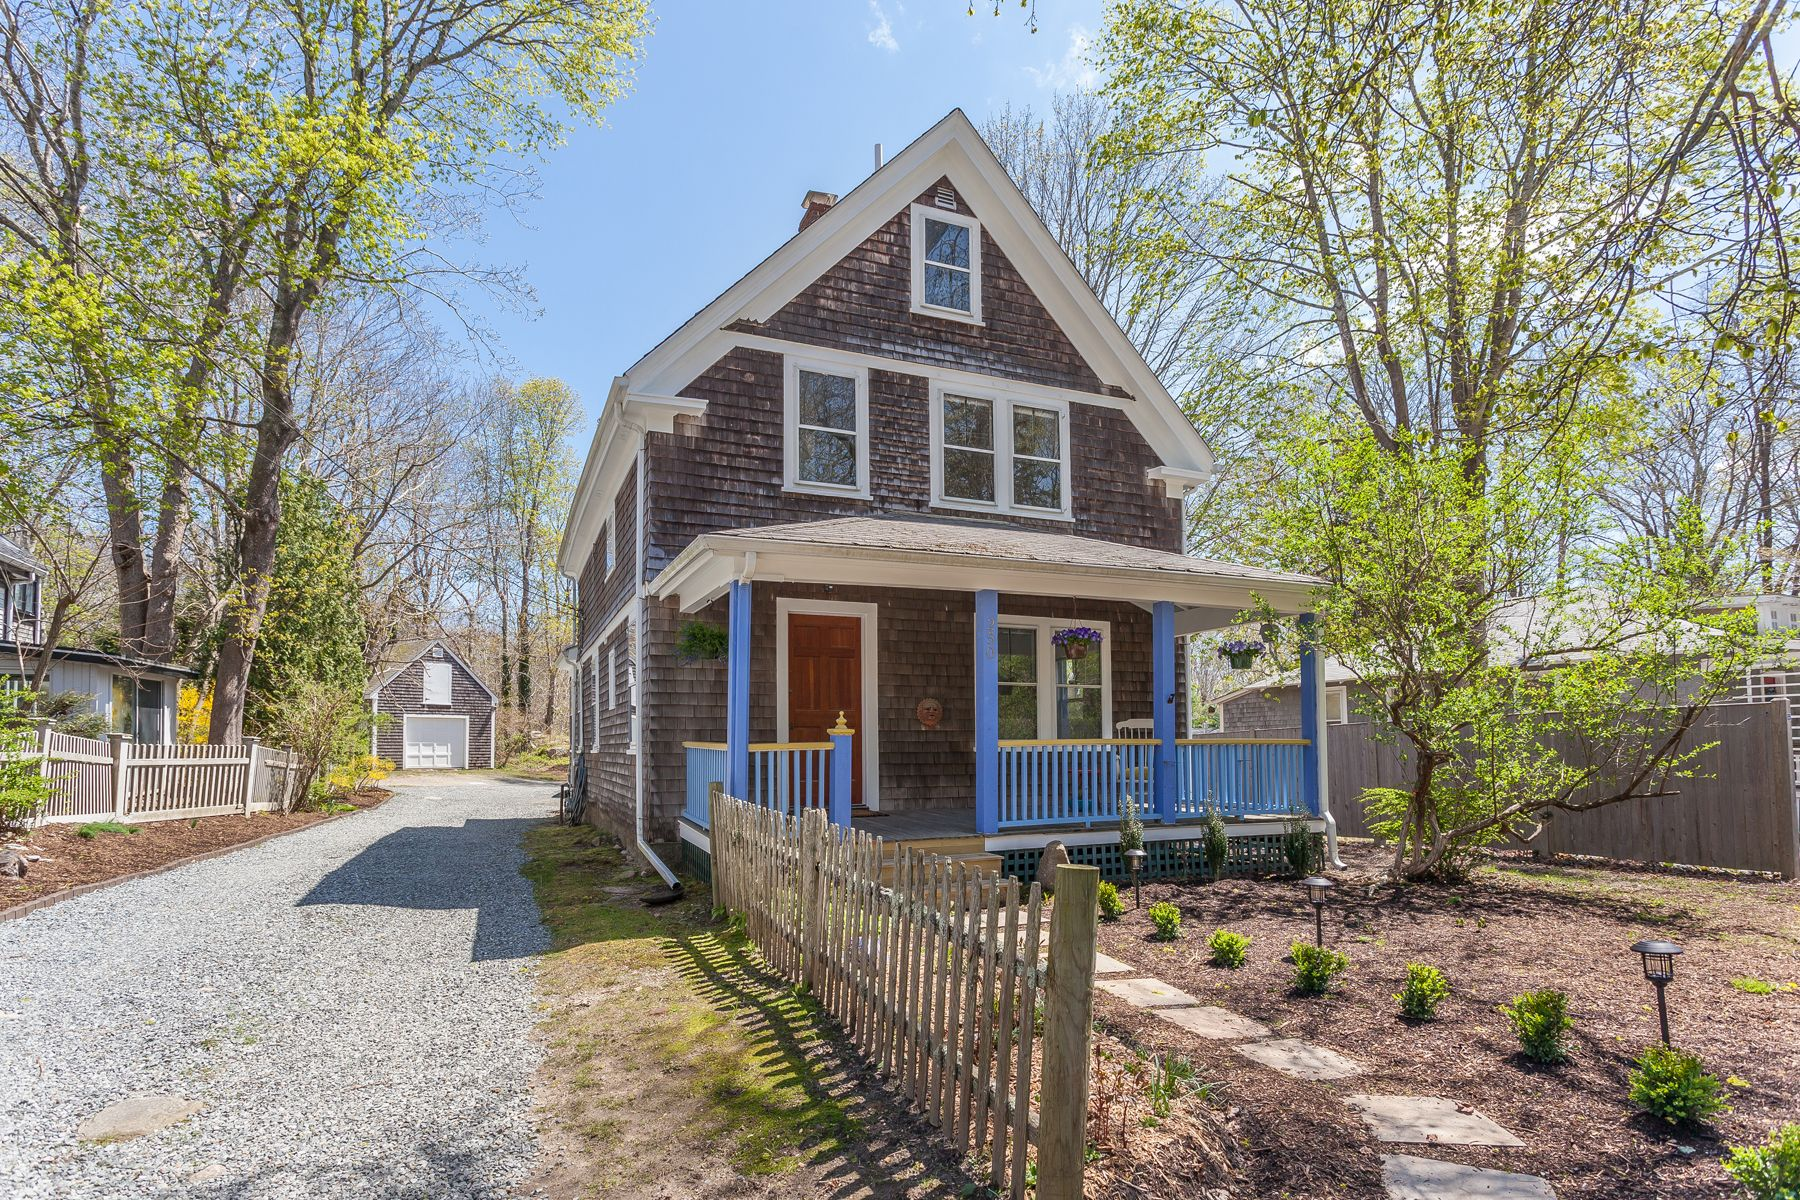 Single Family Home for Active at Quissett Farmhouse with Beach Rights 250 Woods Hole Road Woods Hole, Massachusetts 02543 United States